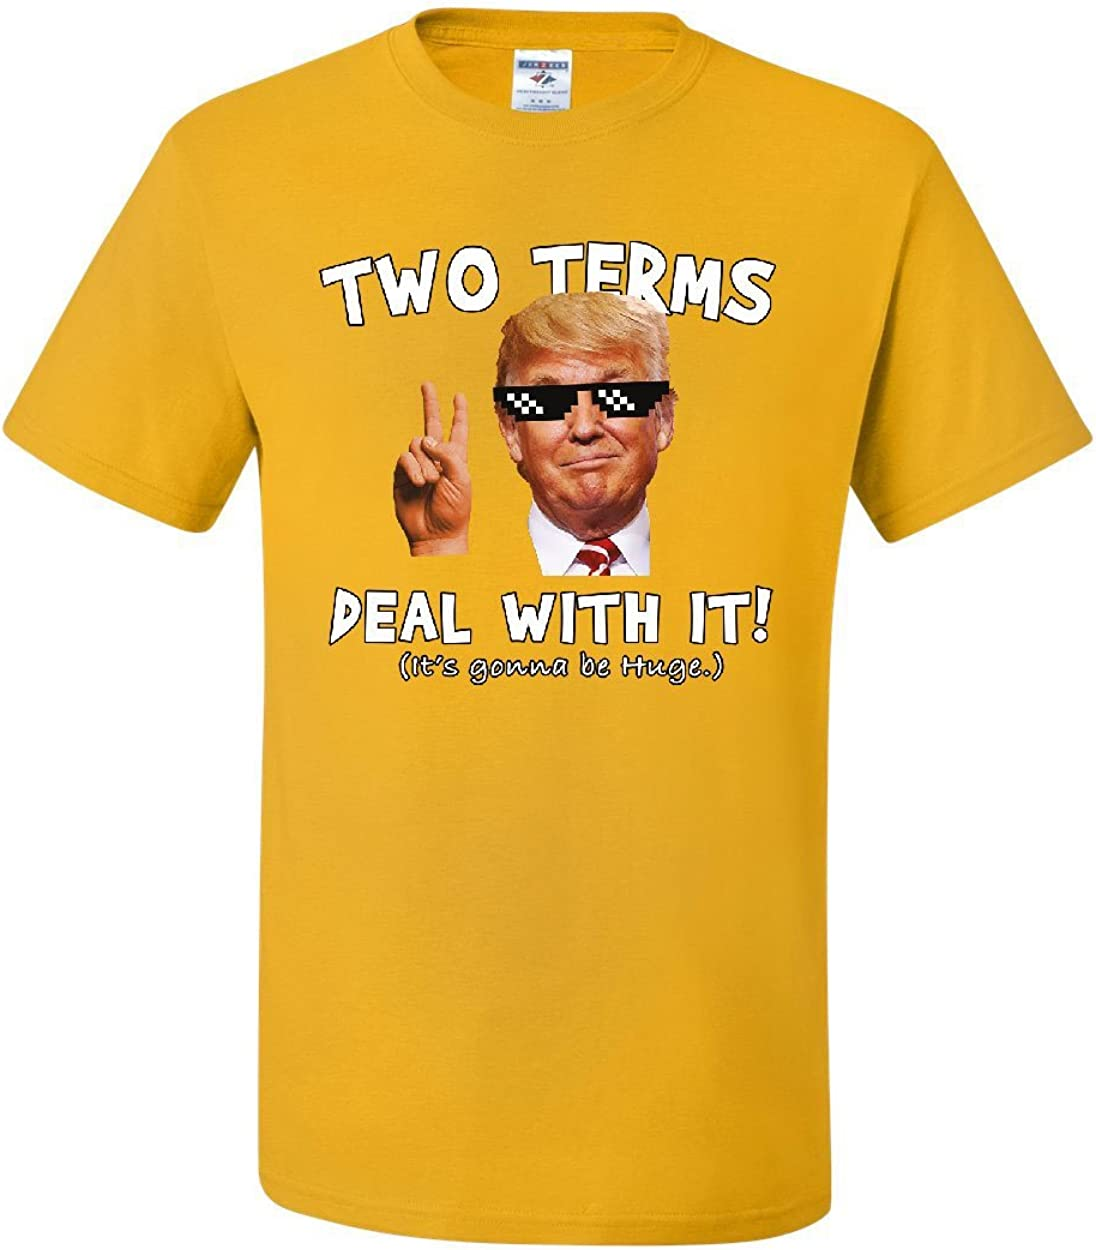 Two Terms Deal with It T-Shirt Donald Trump Troll Meme MAGA 2020 Tee Shirt